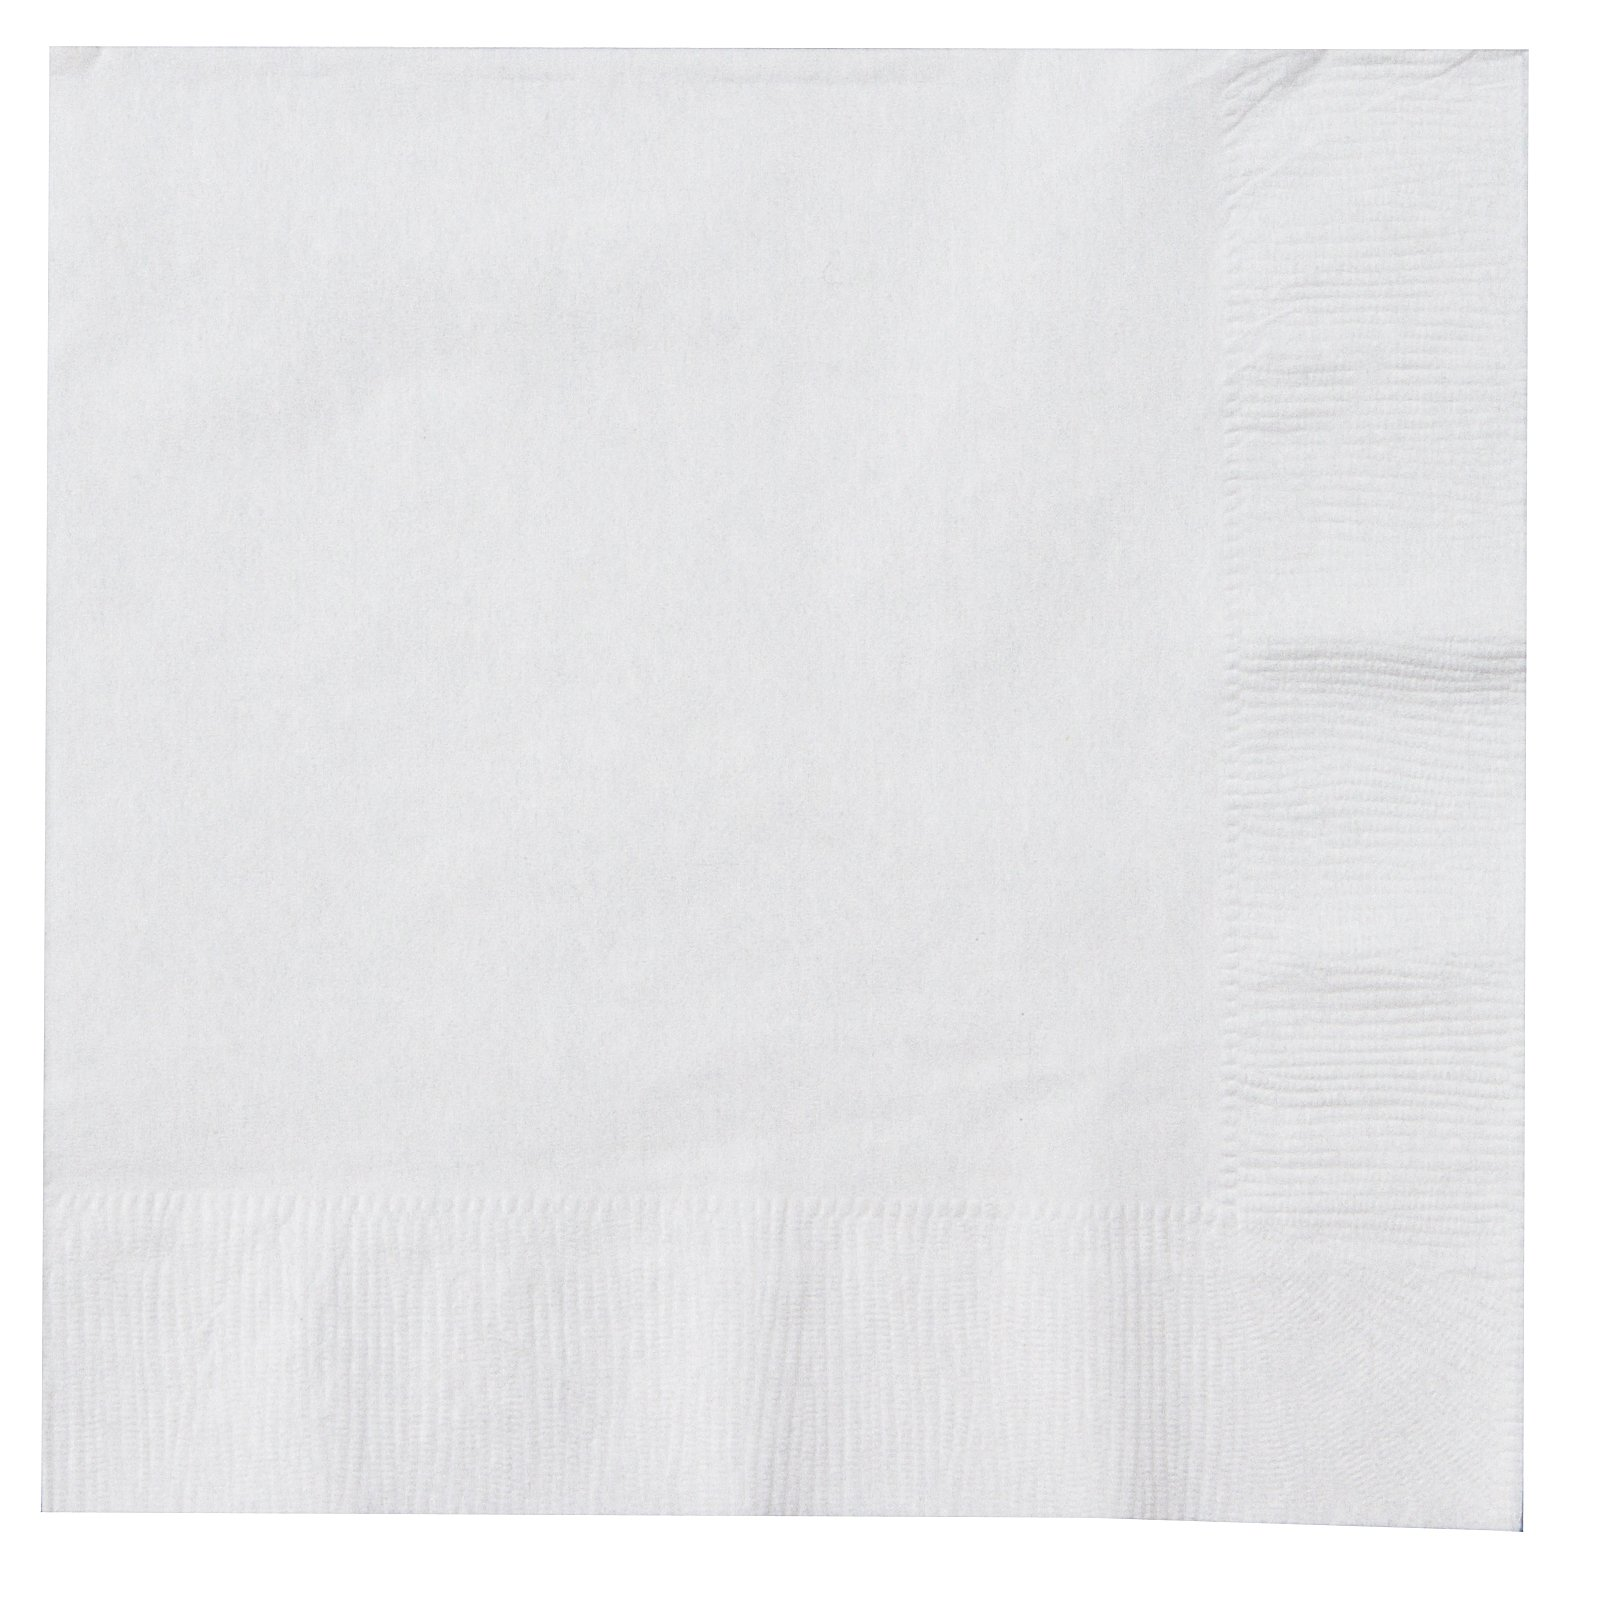 Bright White (White) Lunch Napkin (50 count)